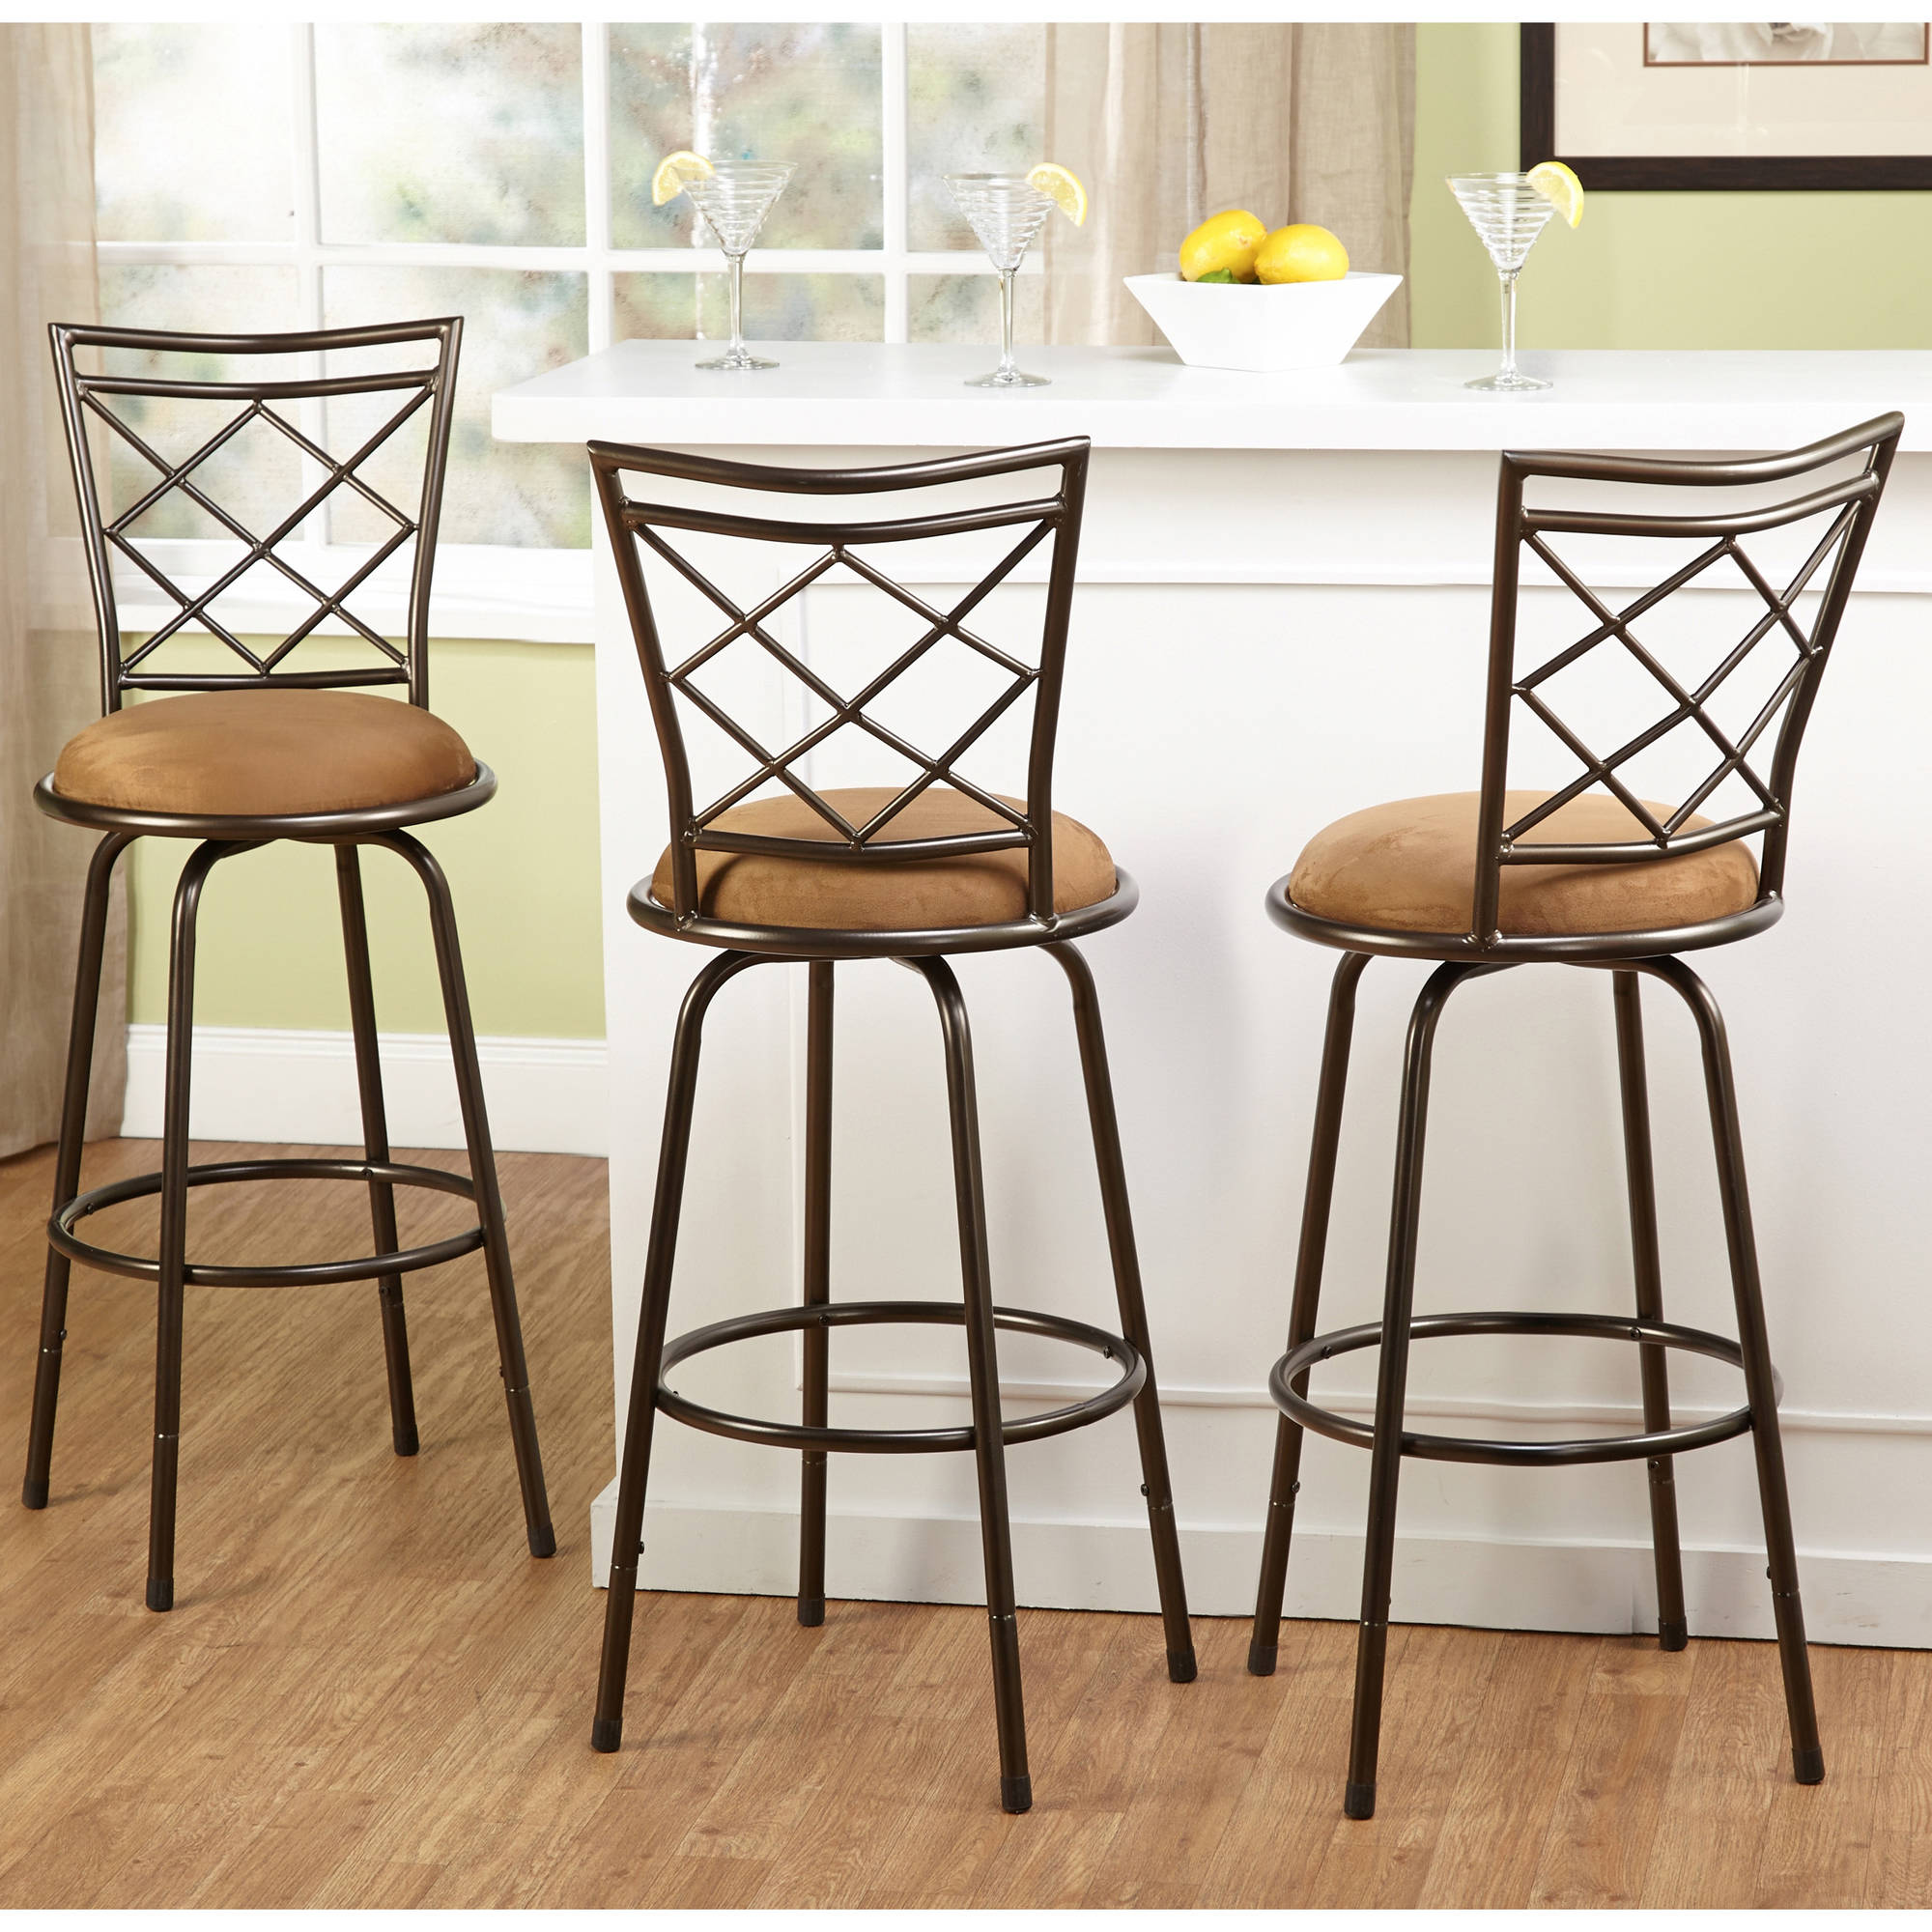 bar height bar stools TMS Avery Adjustable Height Bar Stool, Multiple Colors, Set of 3  bar height bar stools